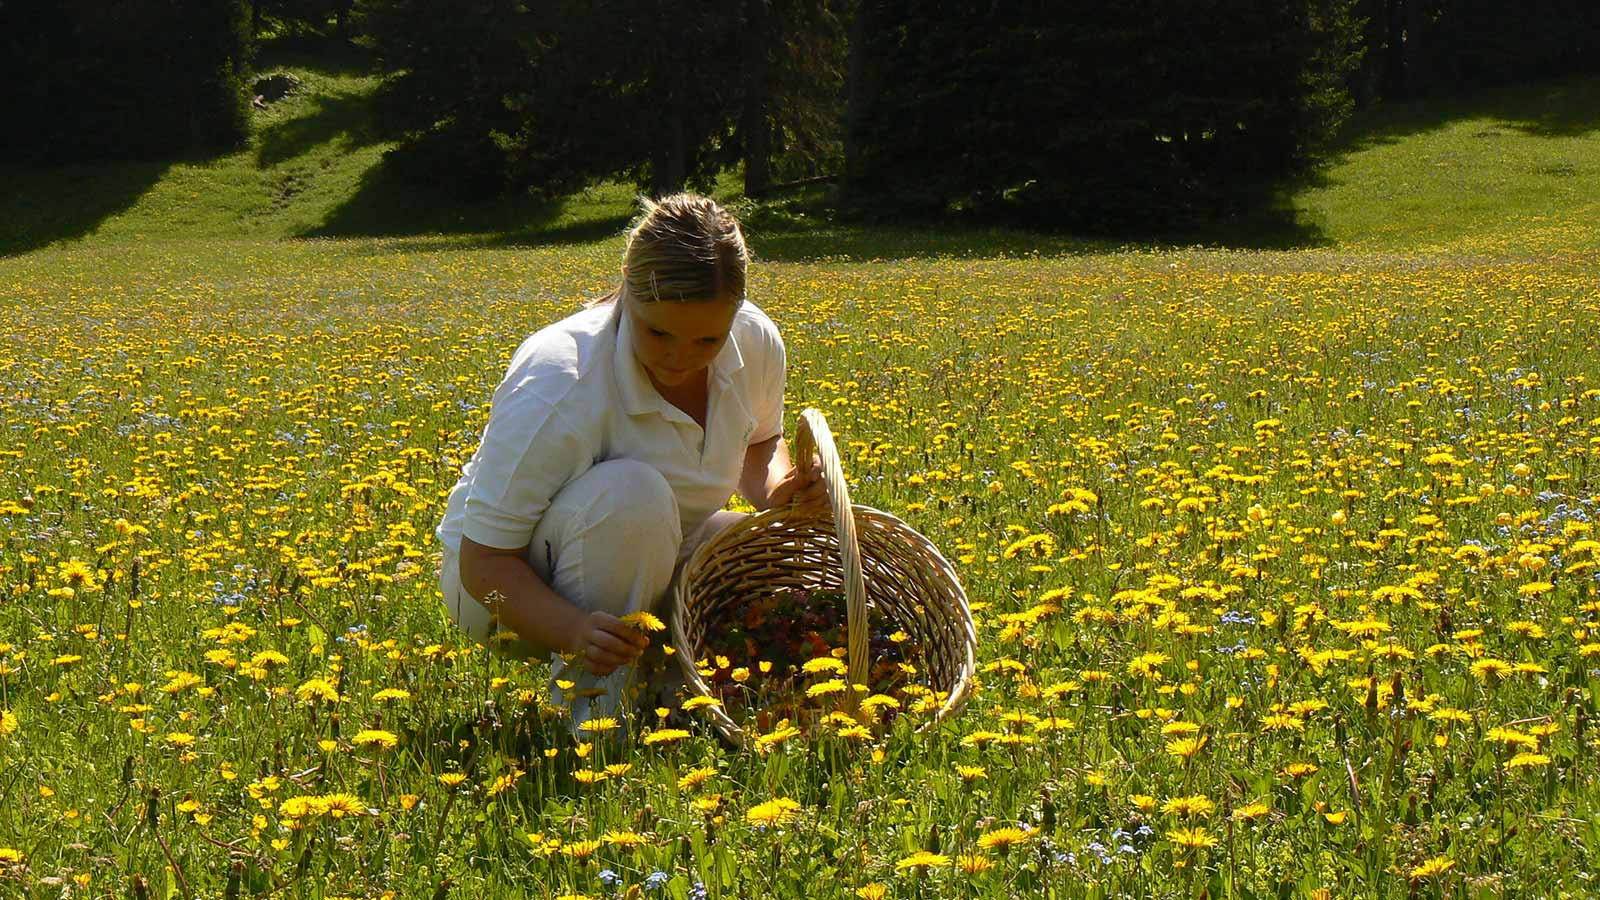 Girl in a meadow collects dandelion flowers and puts them in a basket